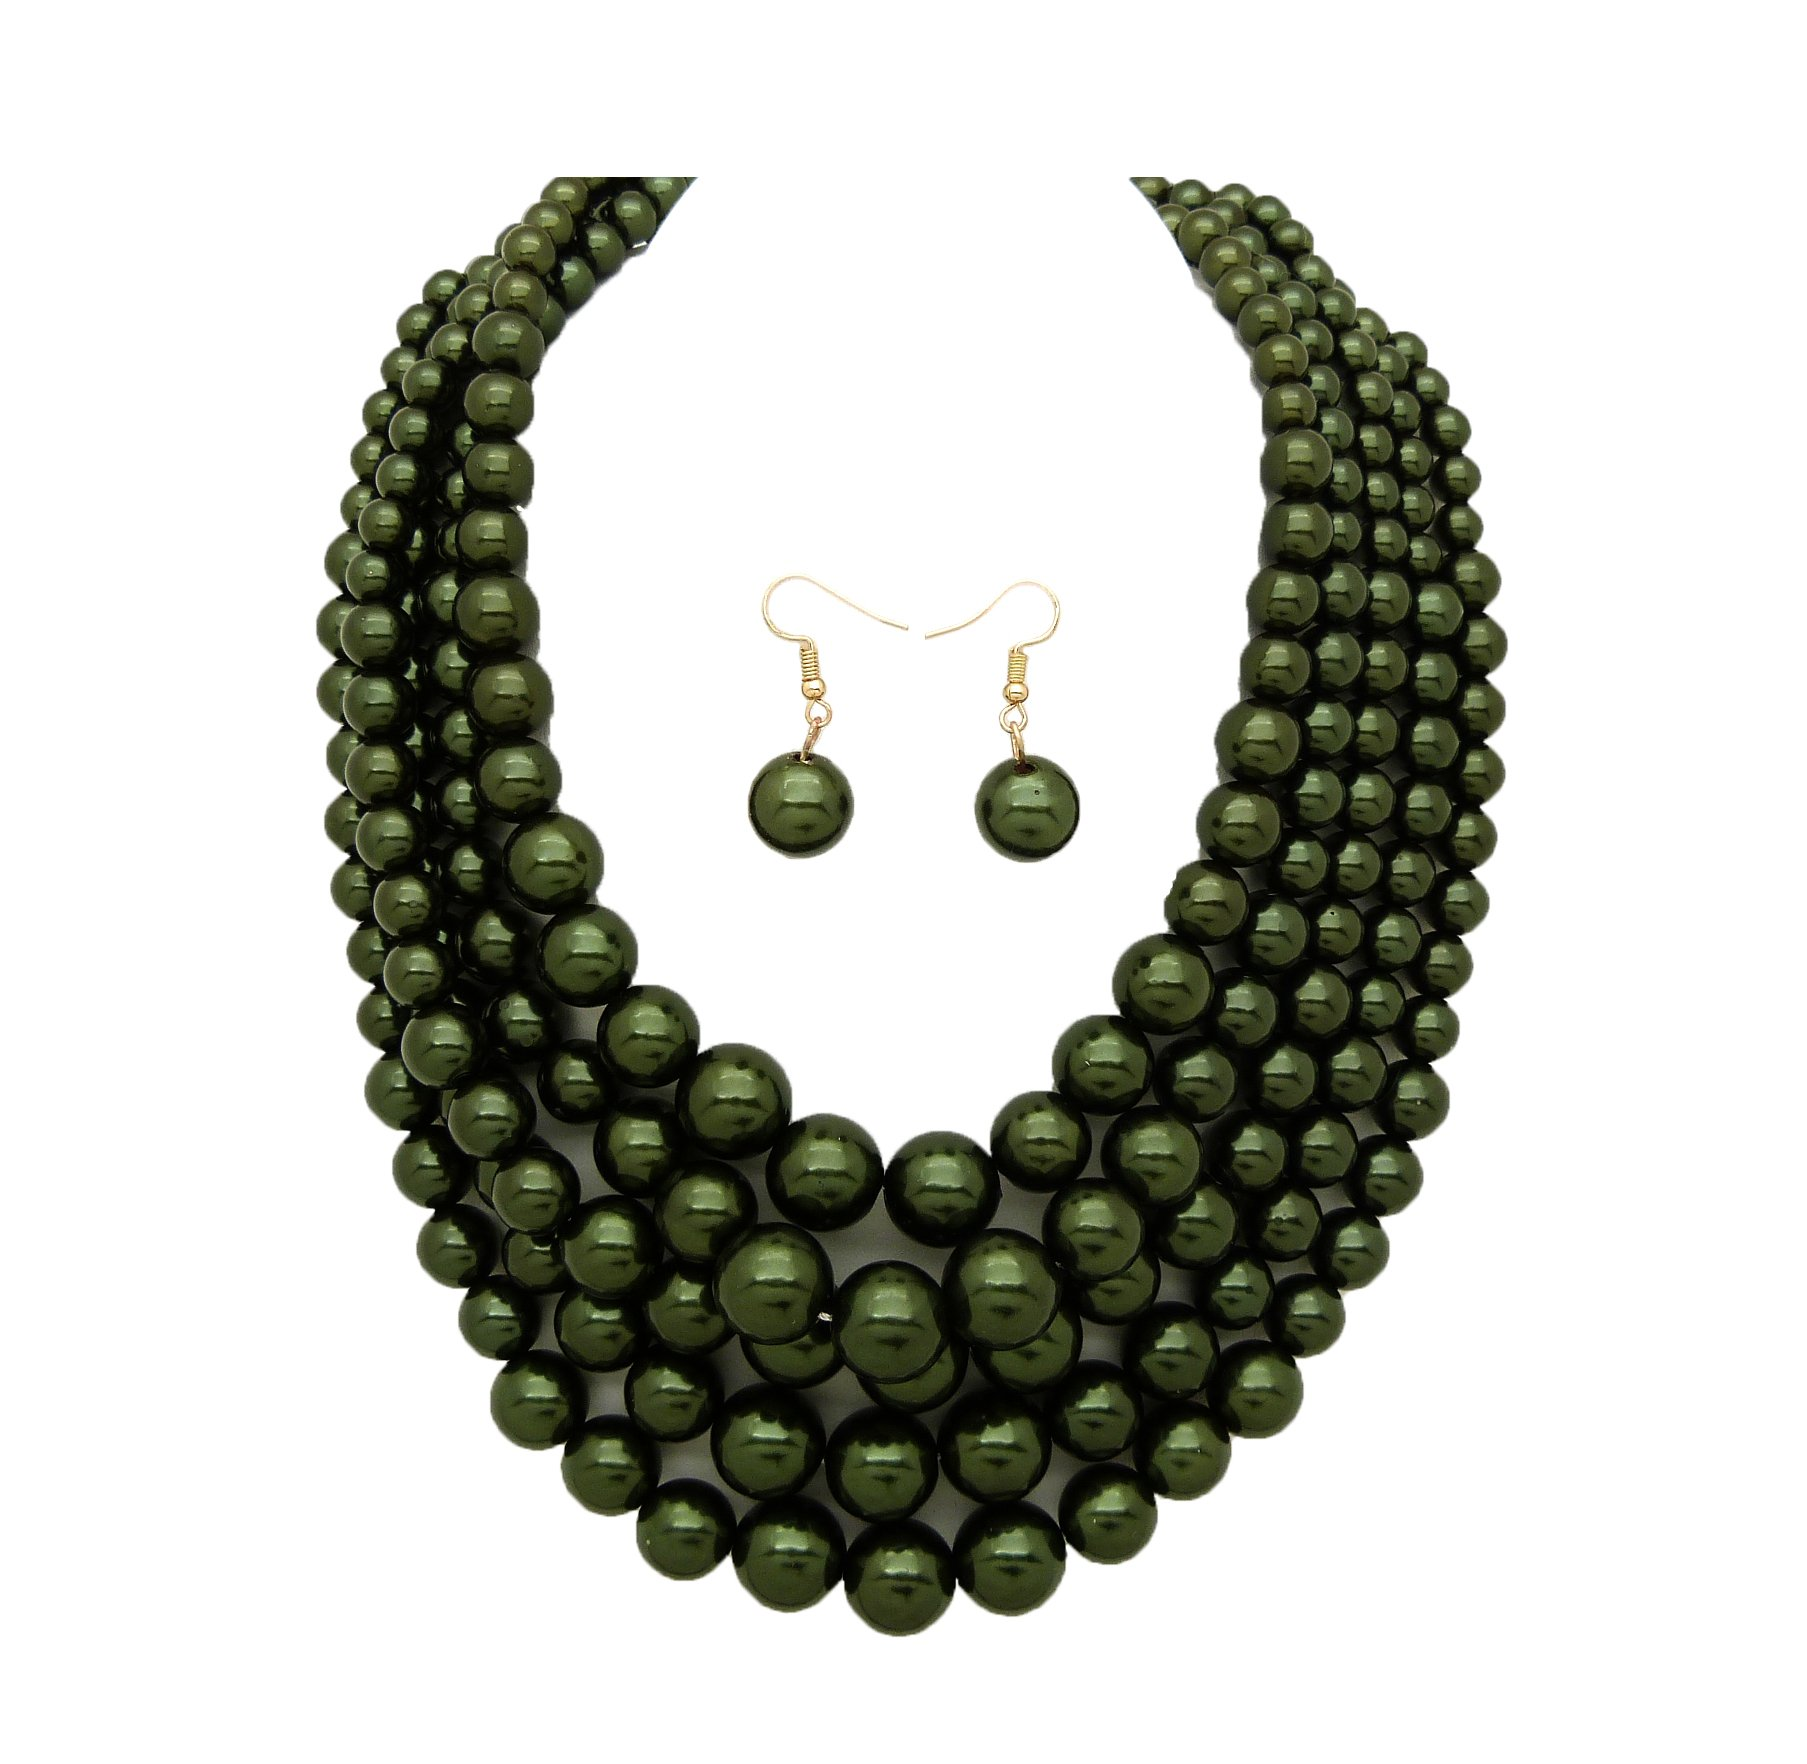 Women's Simulated Faux Pearl Five Multi-Strand Statement Necklace and Earrings Set (Dark Olive Green)